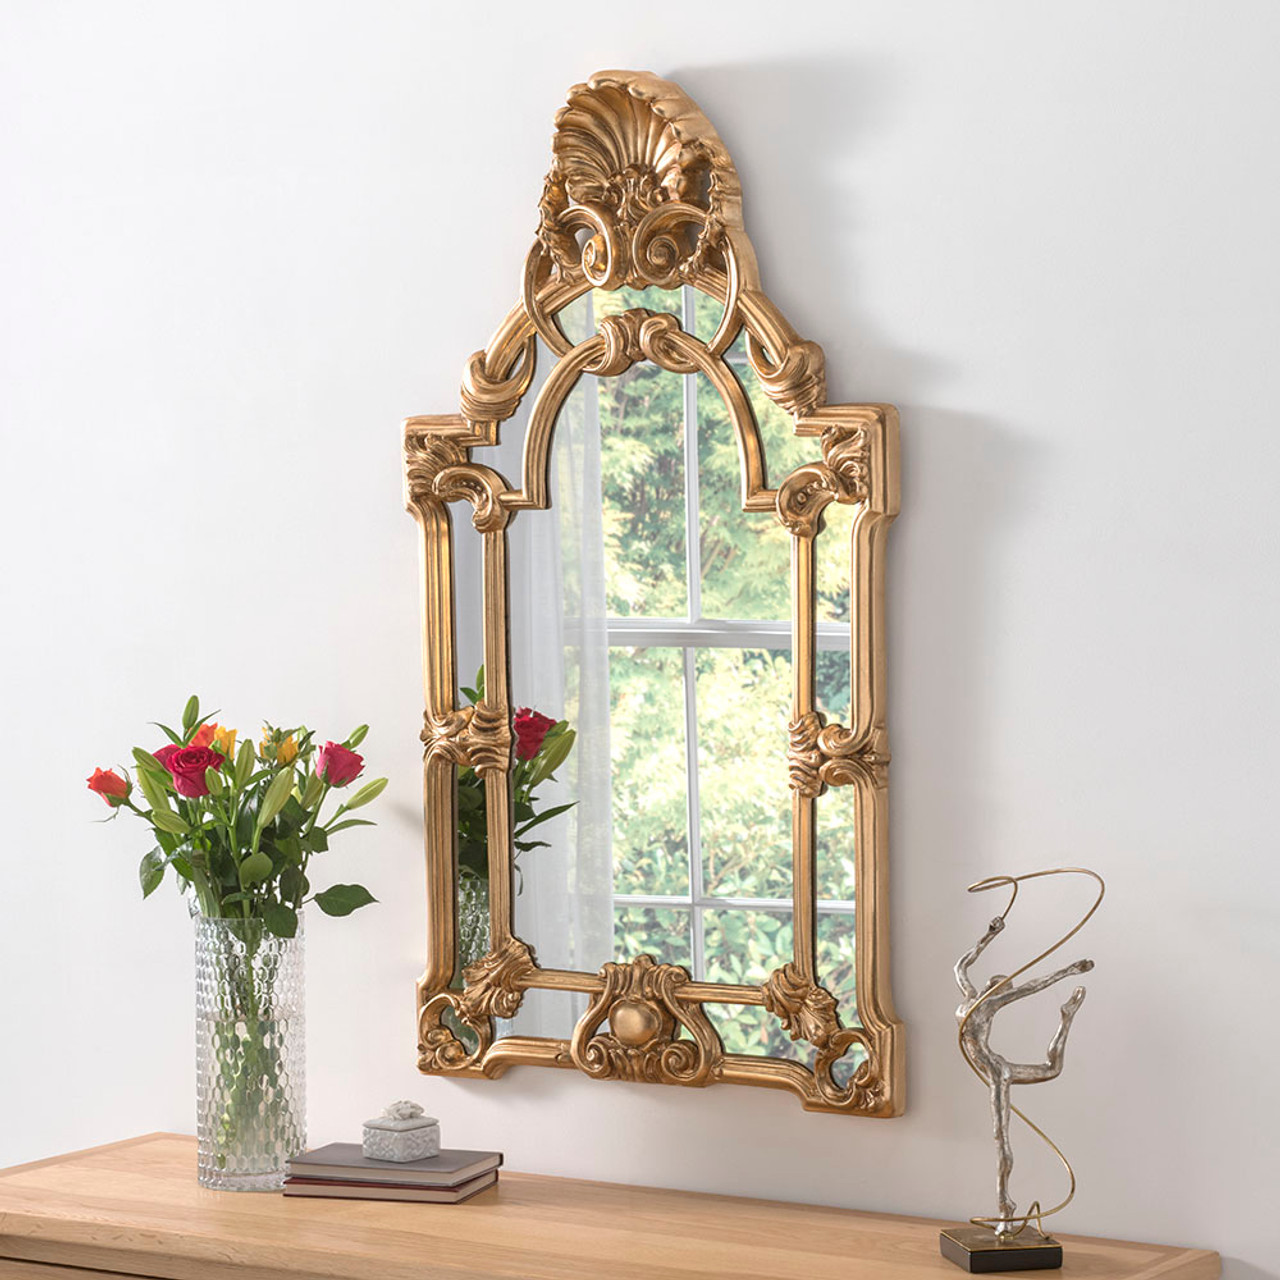 Large Gold Ornate Mirror Decorative Mirrors Online Free Uk Delivery